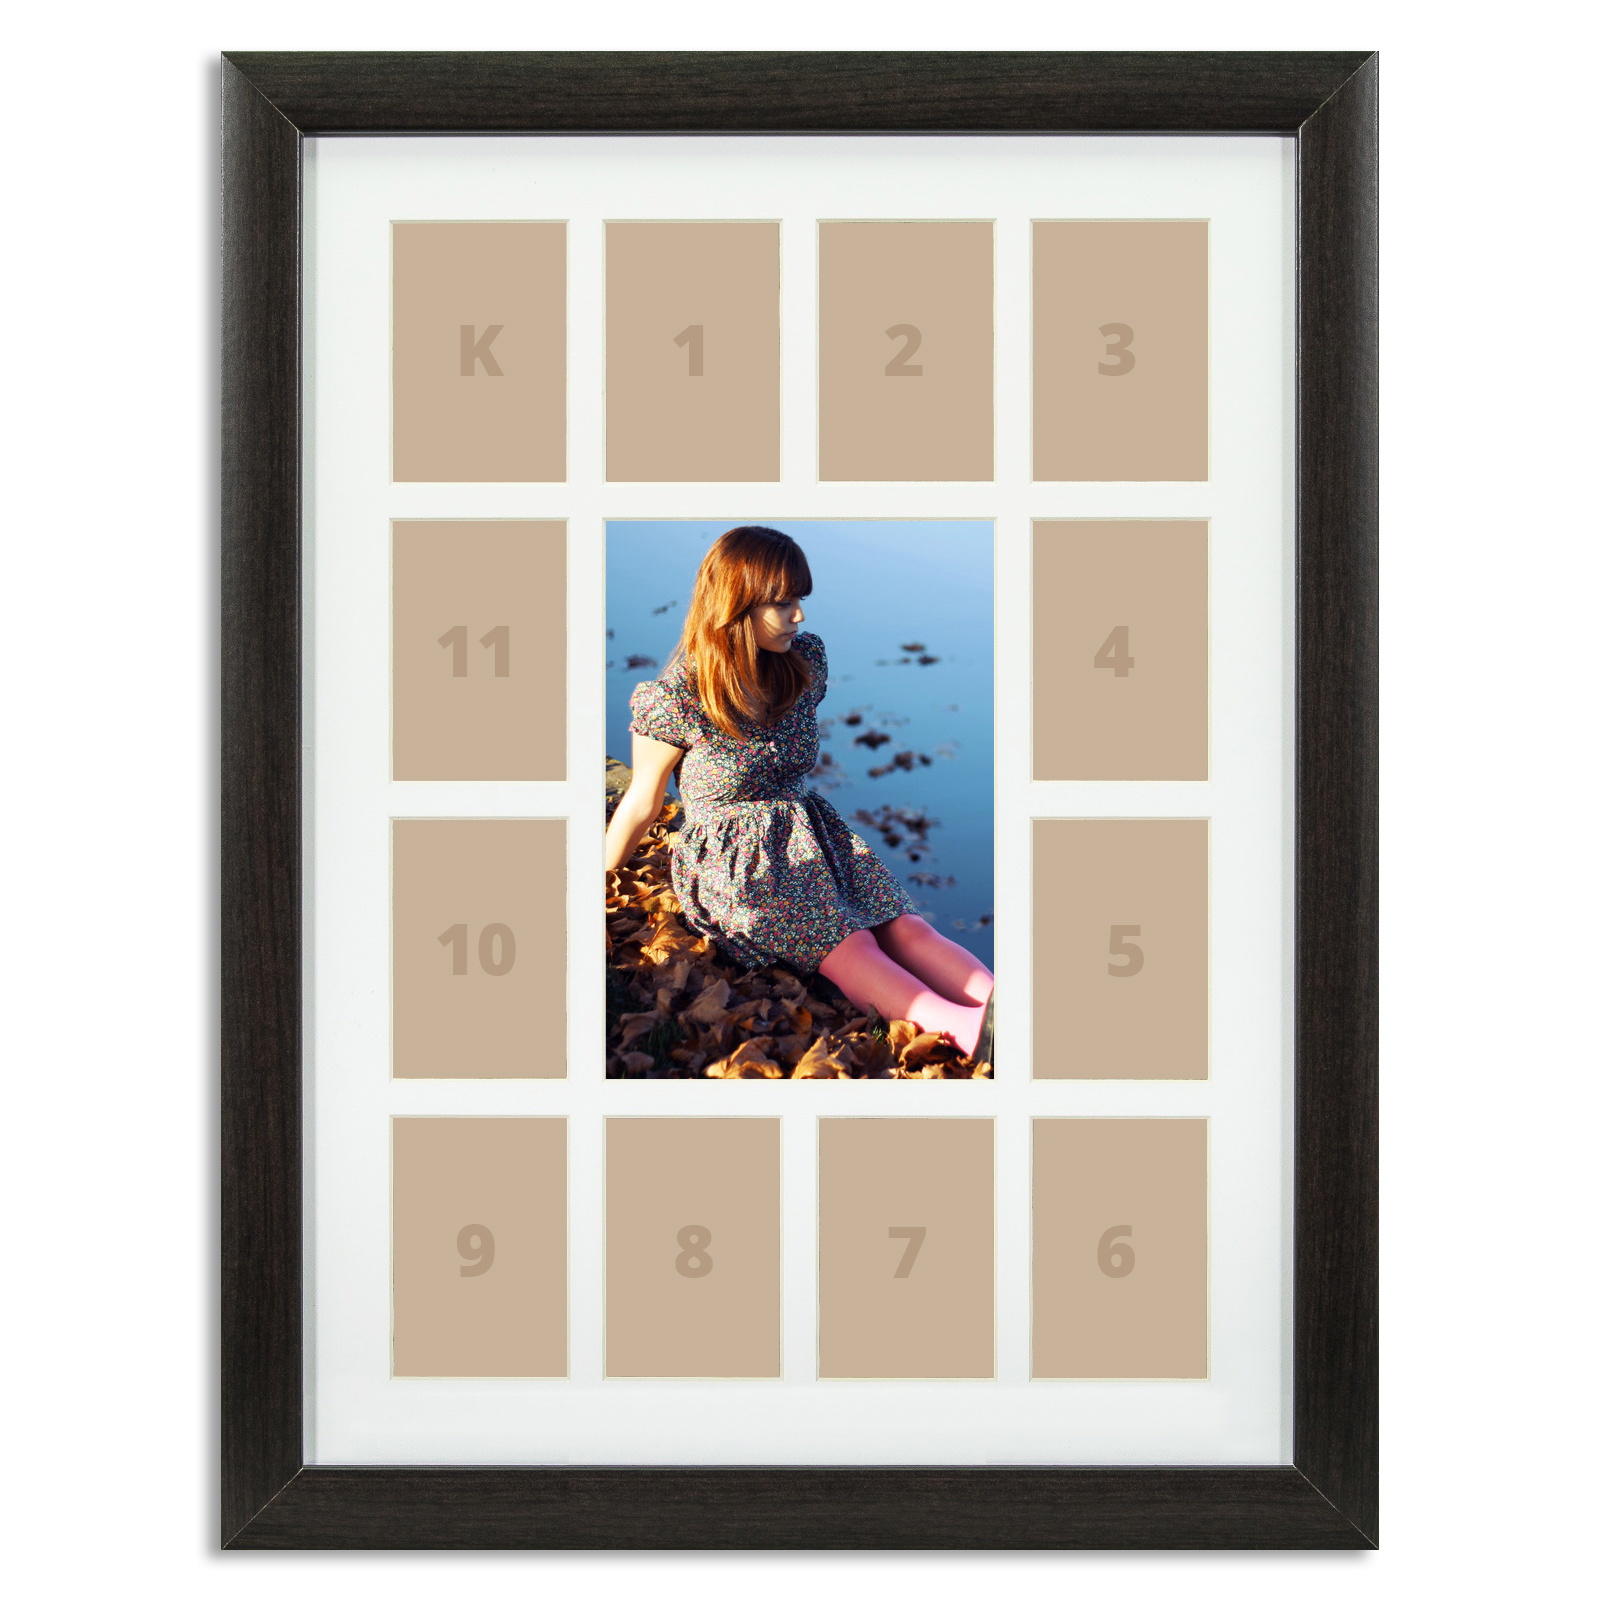 Craig Frames 12x16 Quot Dark Brown Picture Frame White